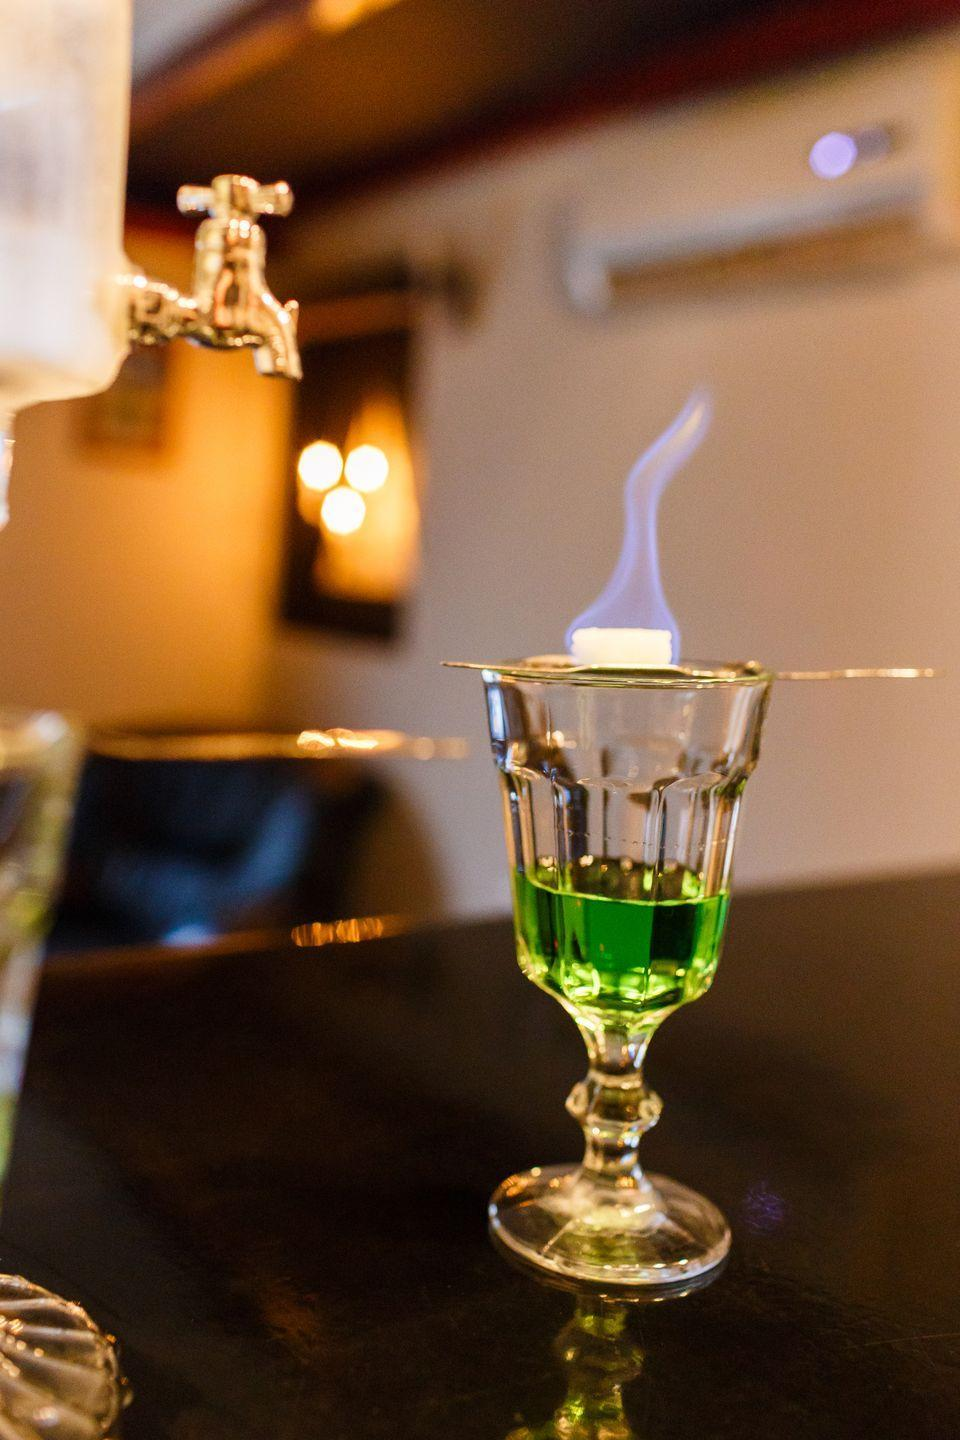 <p>This powerful elixir used to be banned in the United States, but it's made a comeback in recent years, and is particularly great in a low-carb cocktail. Mix it with soda, or sip a little on its own.</p>